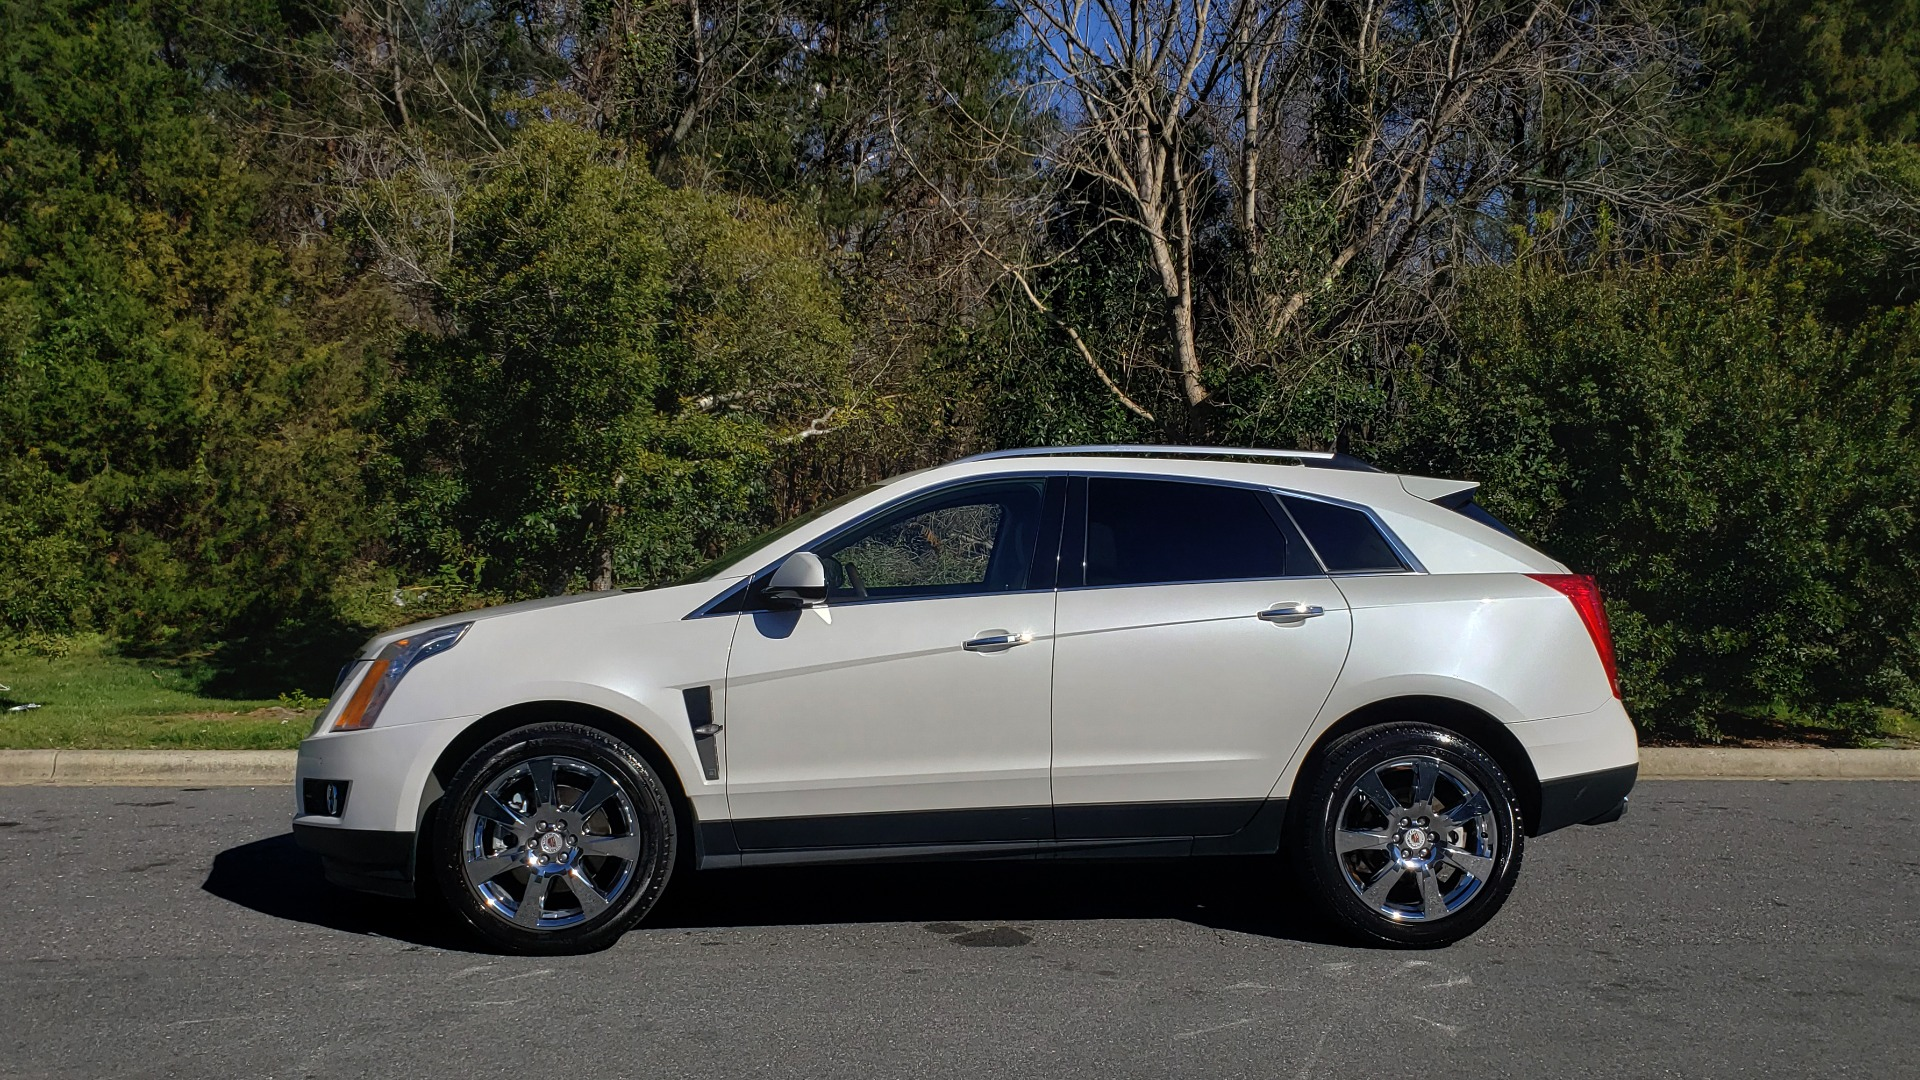 Used 2011 Cadillac SRX PERFORMANCE COLLECTION / ENT SYS / BOSE / REARVIEW for sale $15,999 at Formula Imports in Charlotte NC 28227 2